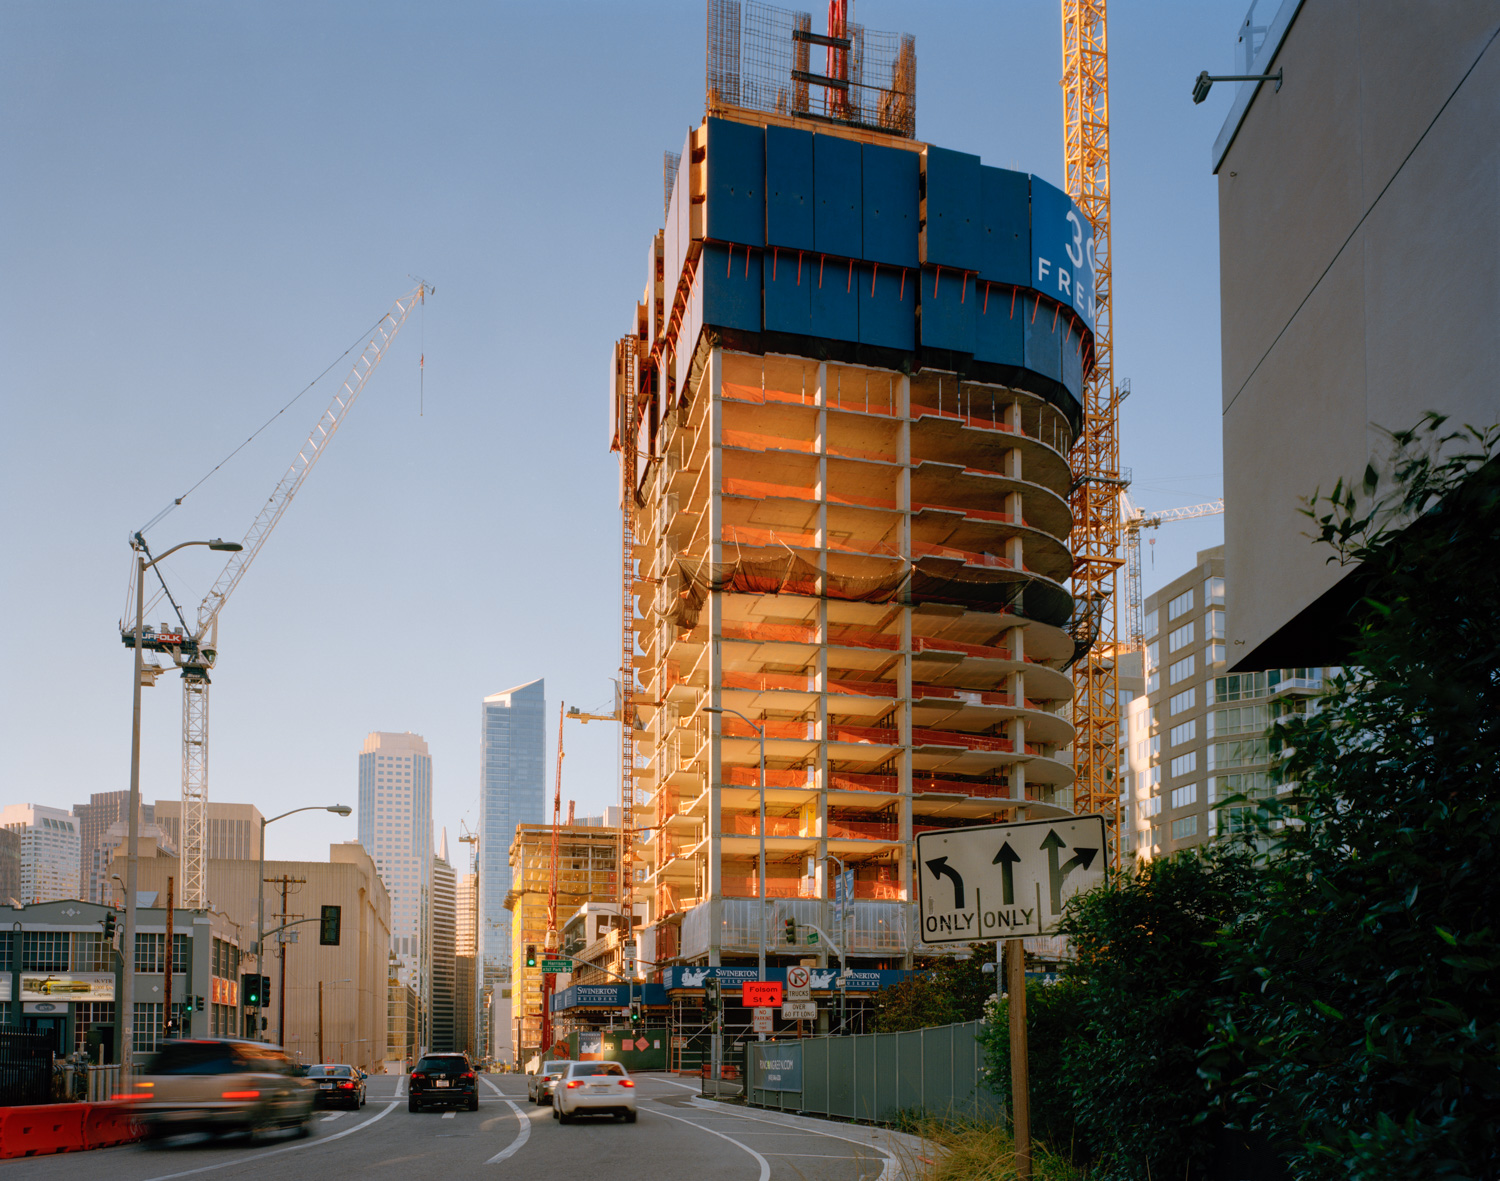 399 Fremont Under Construction,  2014   from  SoMA Now (2011 - ongoing)   Archival Pigment Print  Available sizes 16 x 20 inches, edition of 5 20 x 24 inches, edition of 2 30 x 40 inches, edition of 2